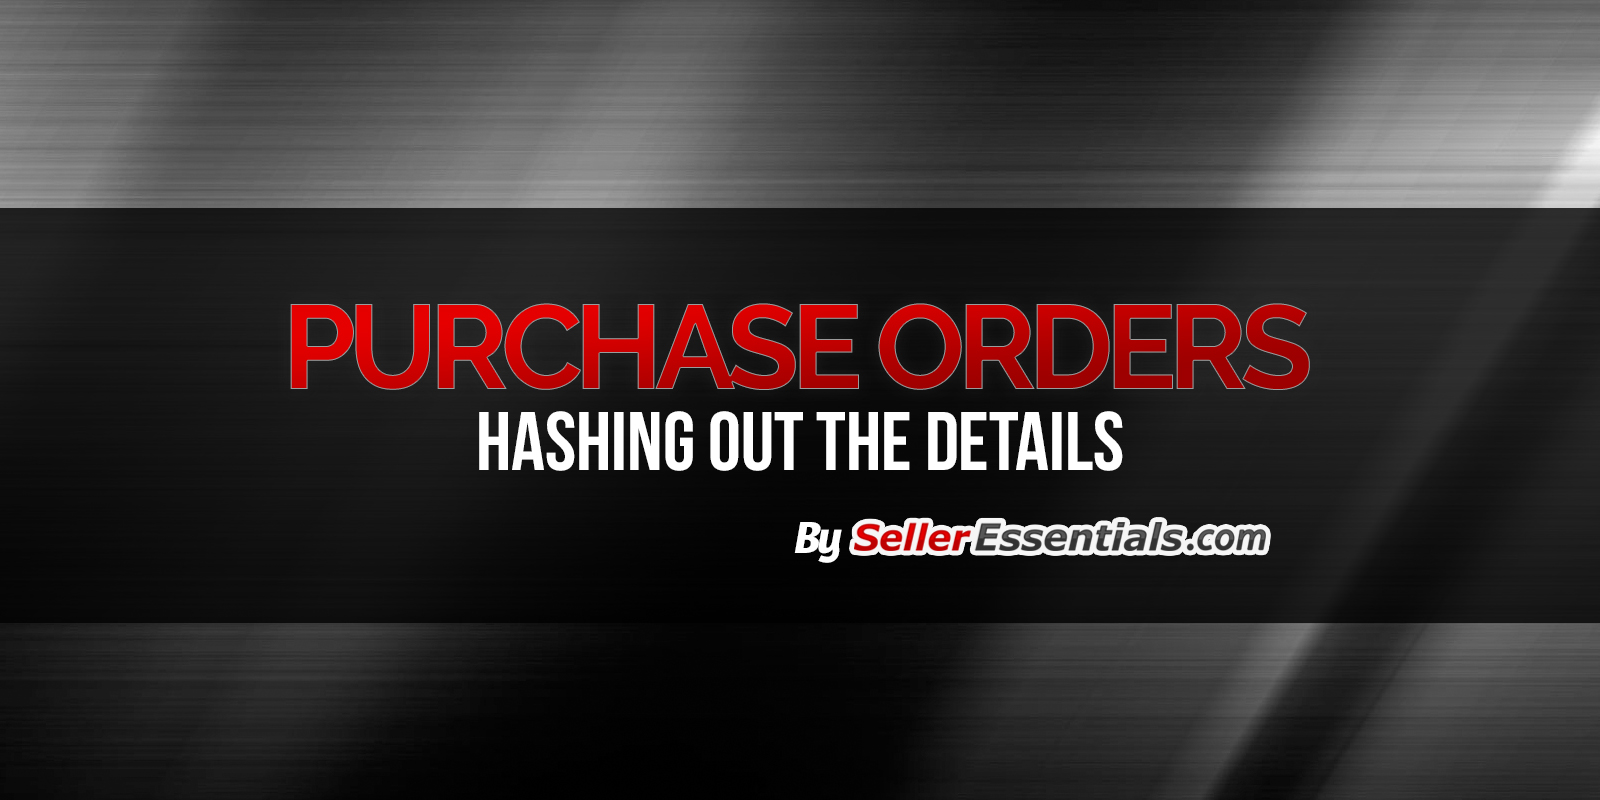 Purchase Orders - Hashing our the details